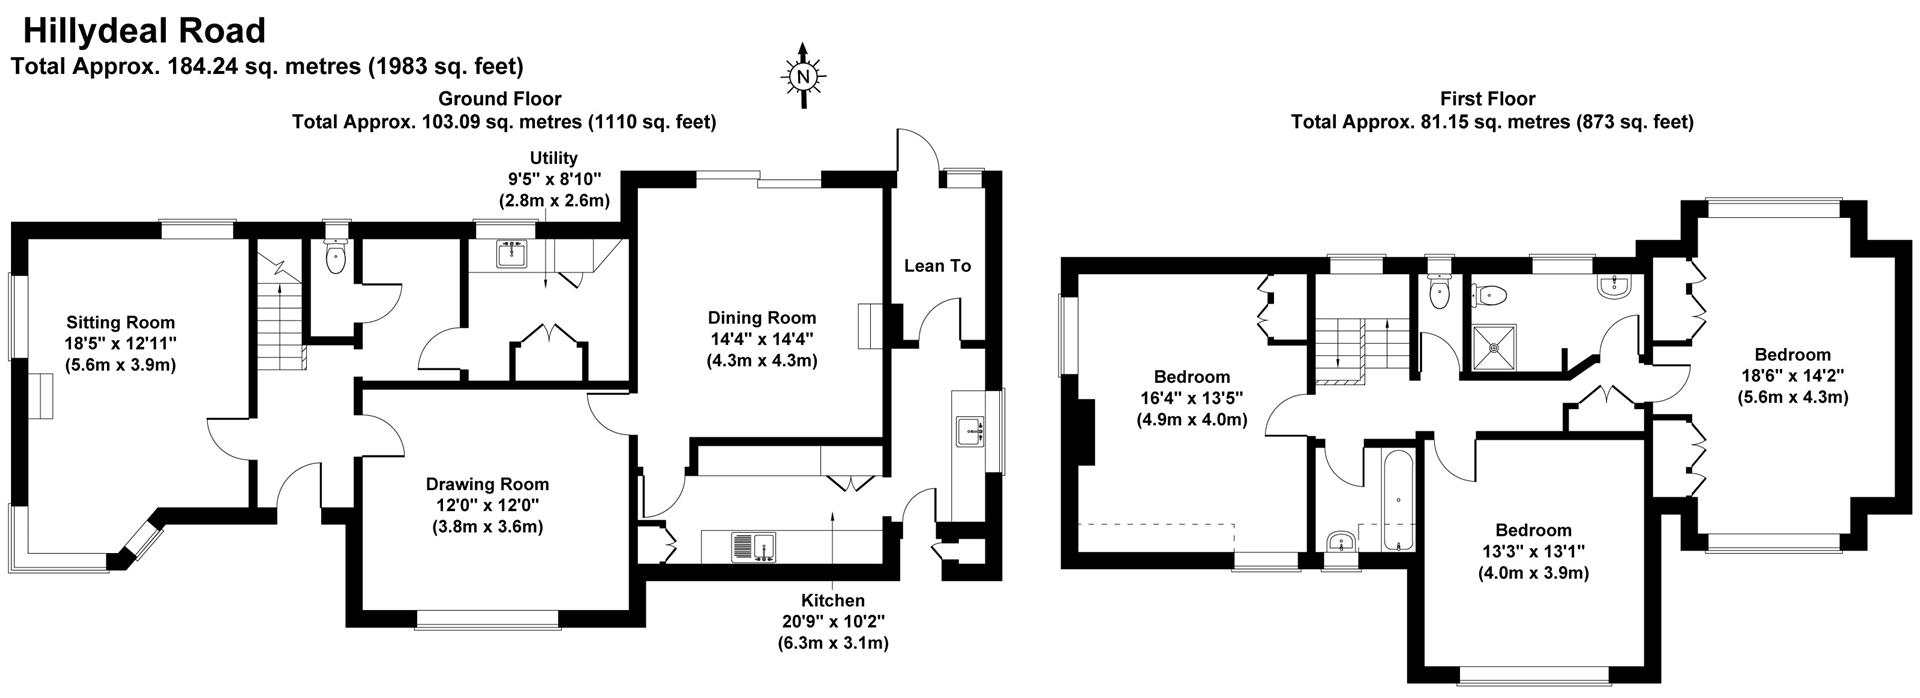 100 100 top rated floor plans 100 historical house Top rated floor plans